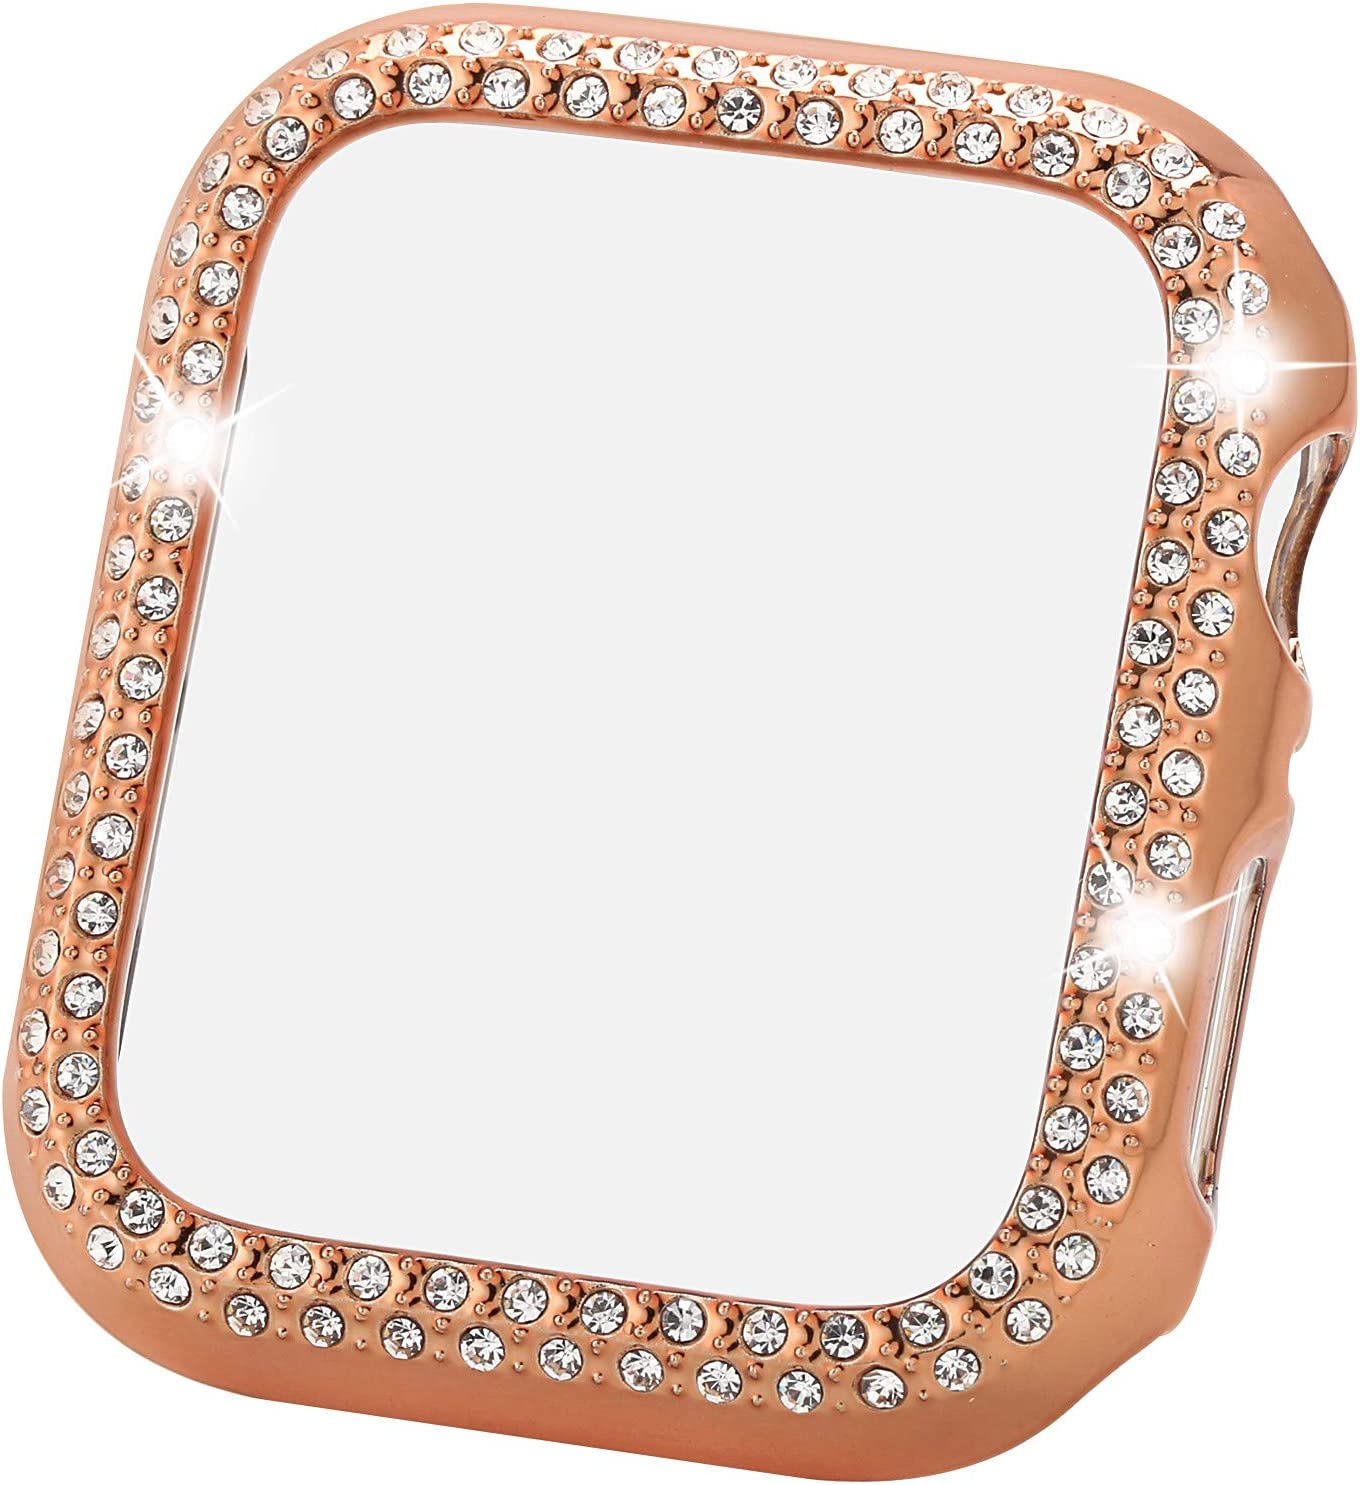 Greaciary Sparkle Compatible With Apple Watch 44mm Compatible With Iwatch Face Bling Crystal Diamond Plate Cover Protective Frame For Apple Watch 5 4 Women Double Rhinestone Rose Gold 44mm Amazon Co Uk Electronics